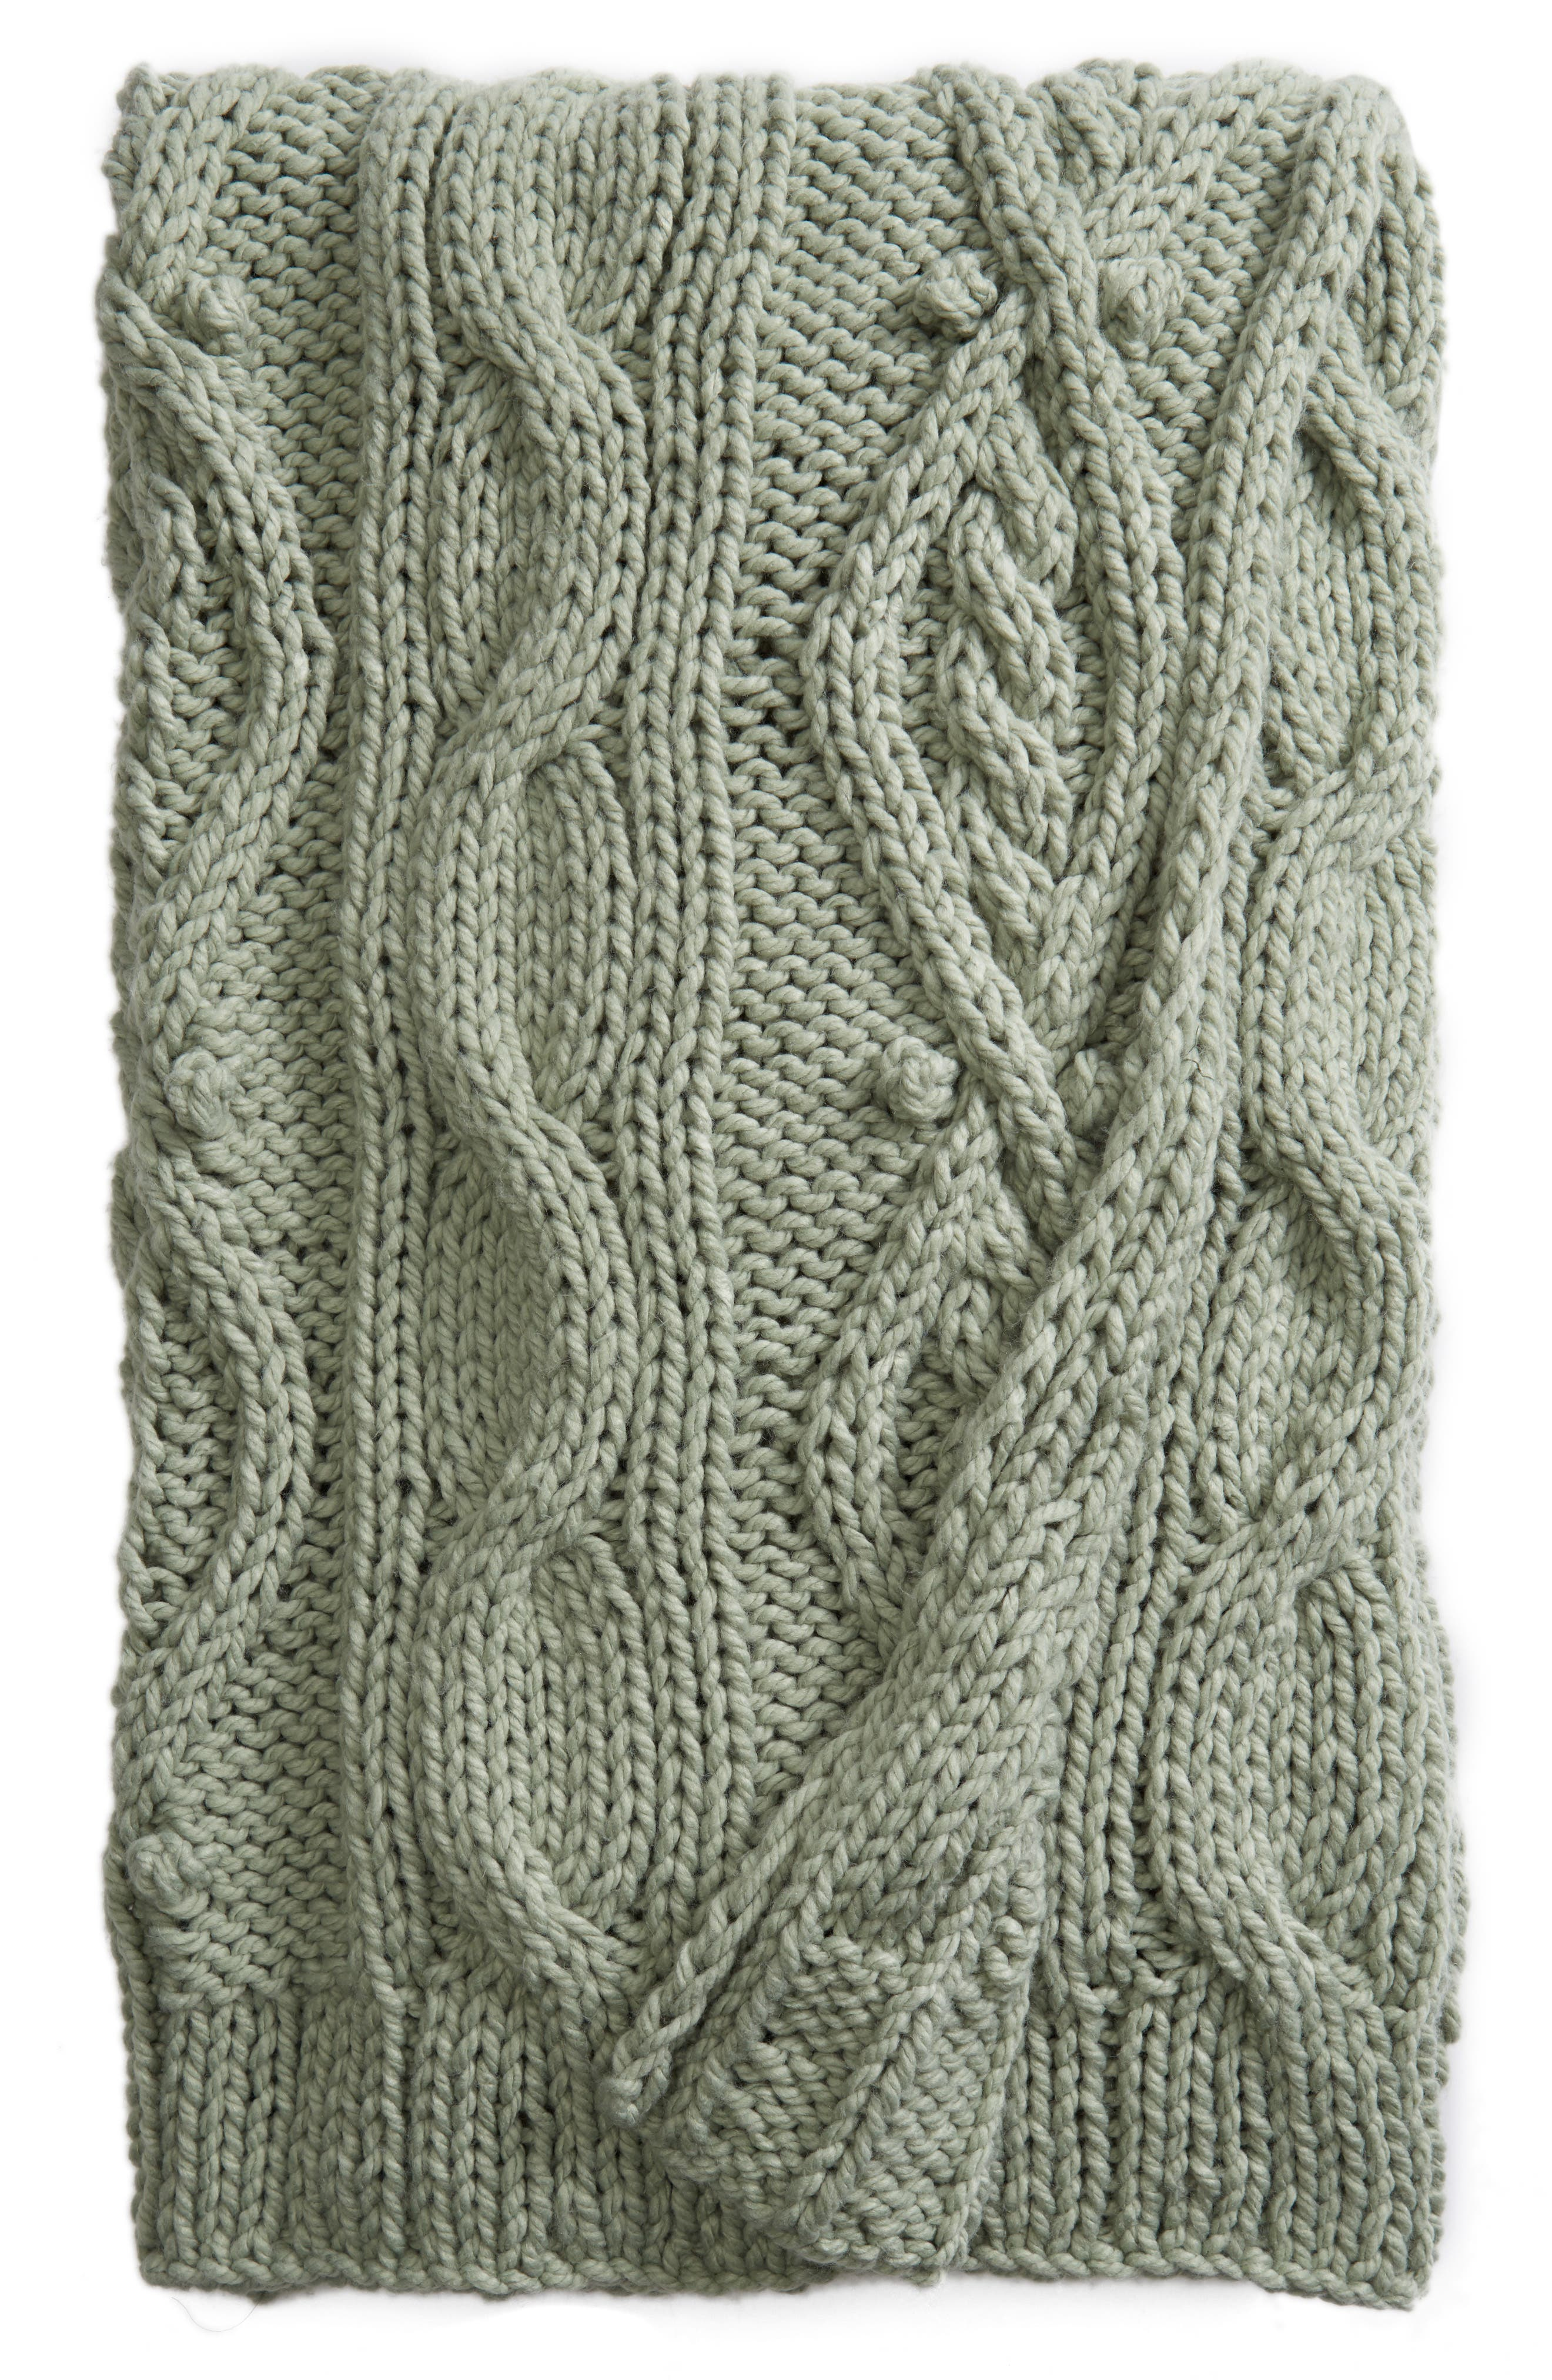 Chunky Cable Knit Throw Blanket,                             Main thumbnail 1, color,                             GREEN ICEBERG